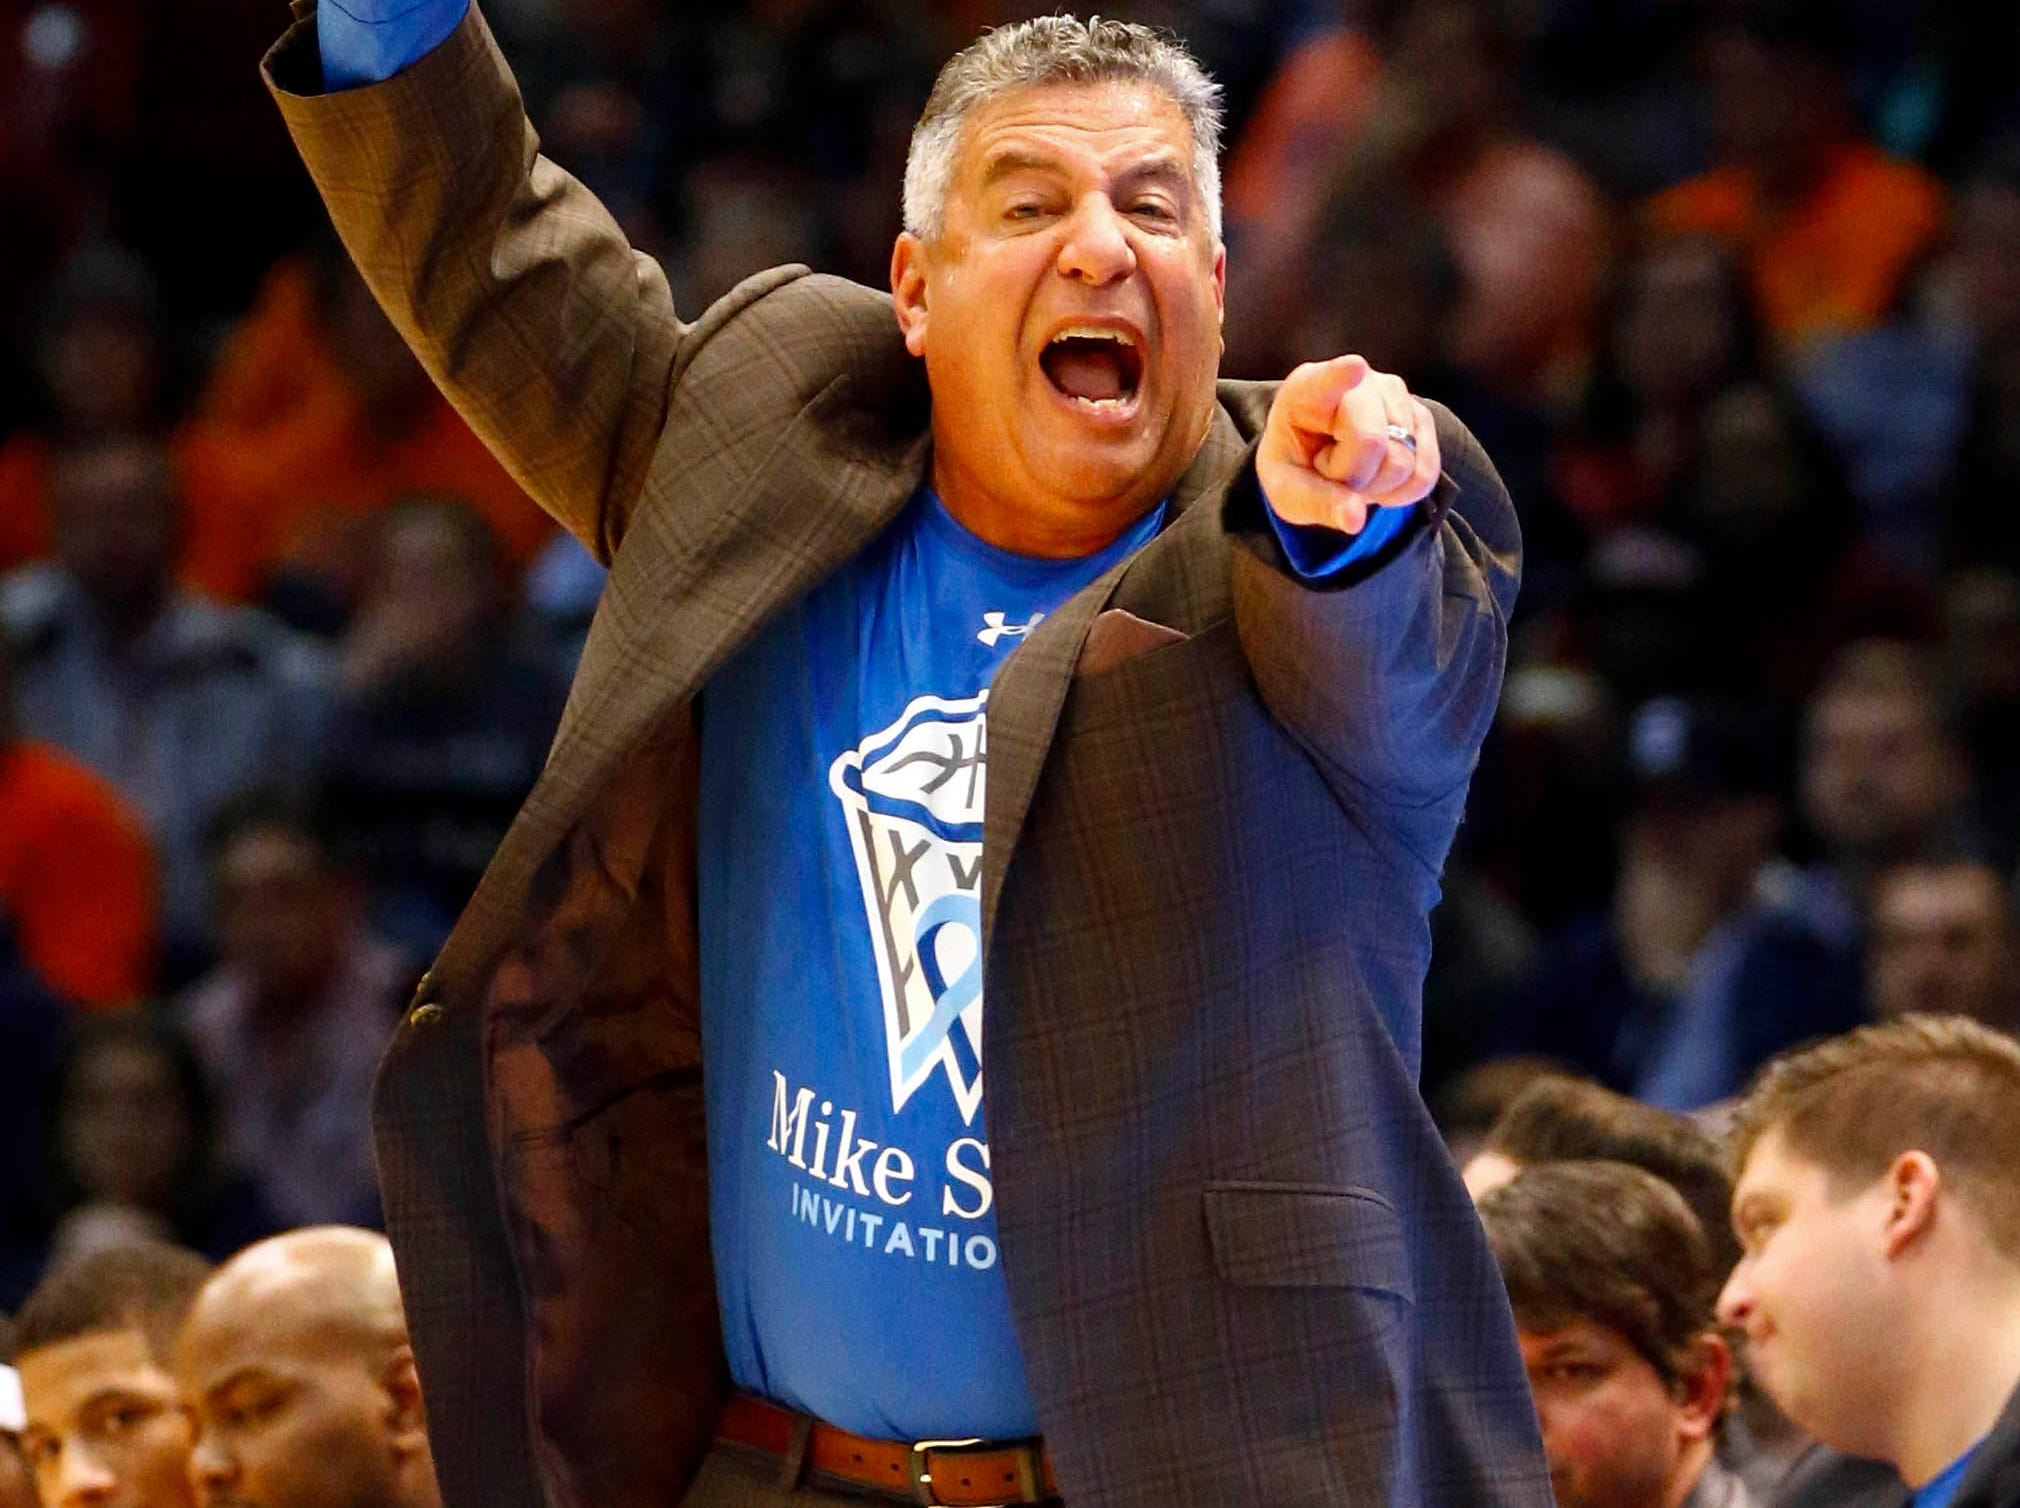 Dec 15, 2018; Birmingham, AL, USA; Auburn Tigers head coach Bruce Pearl reacts to a call during an NCAA basketball game against the UAB Blazers at Legacy Arena. Mandatory Credit: Butch Dill-USA TODAY Sports